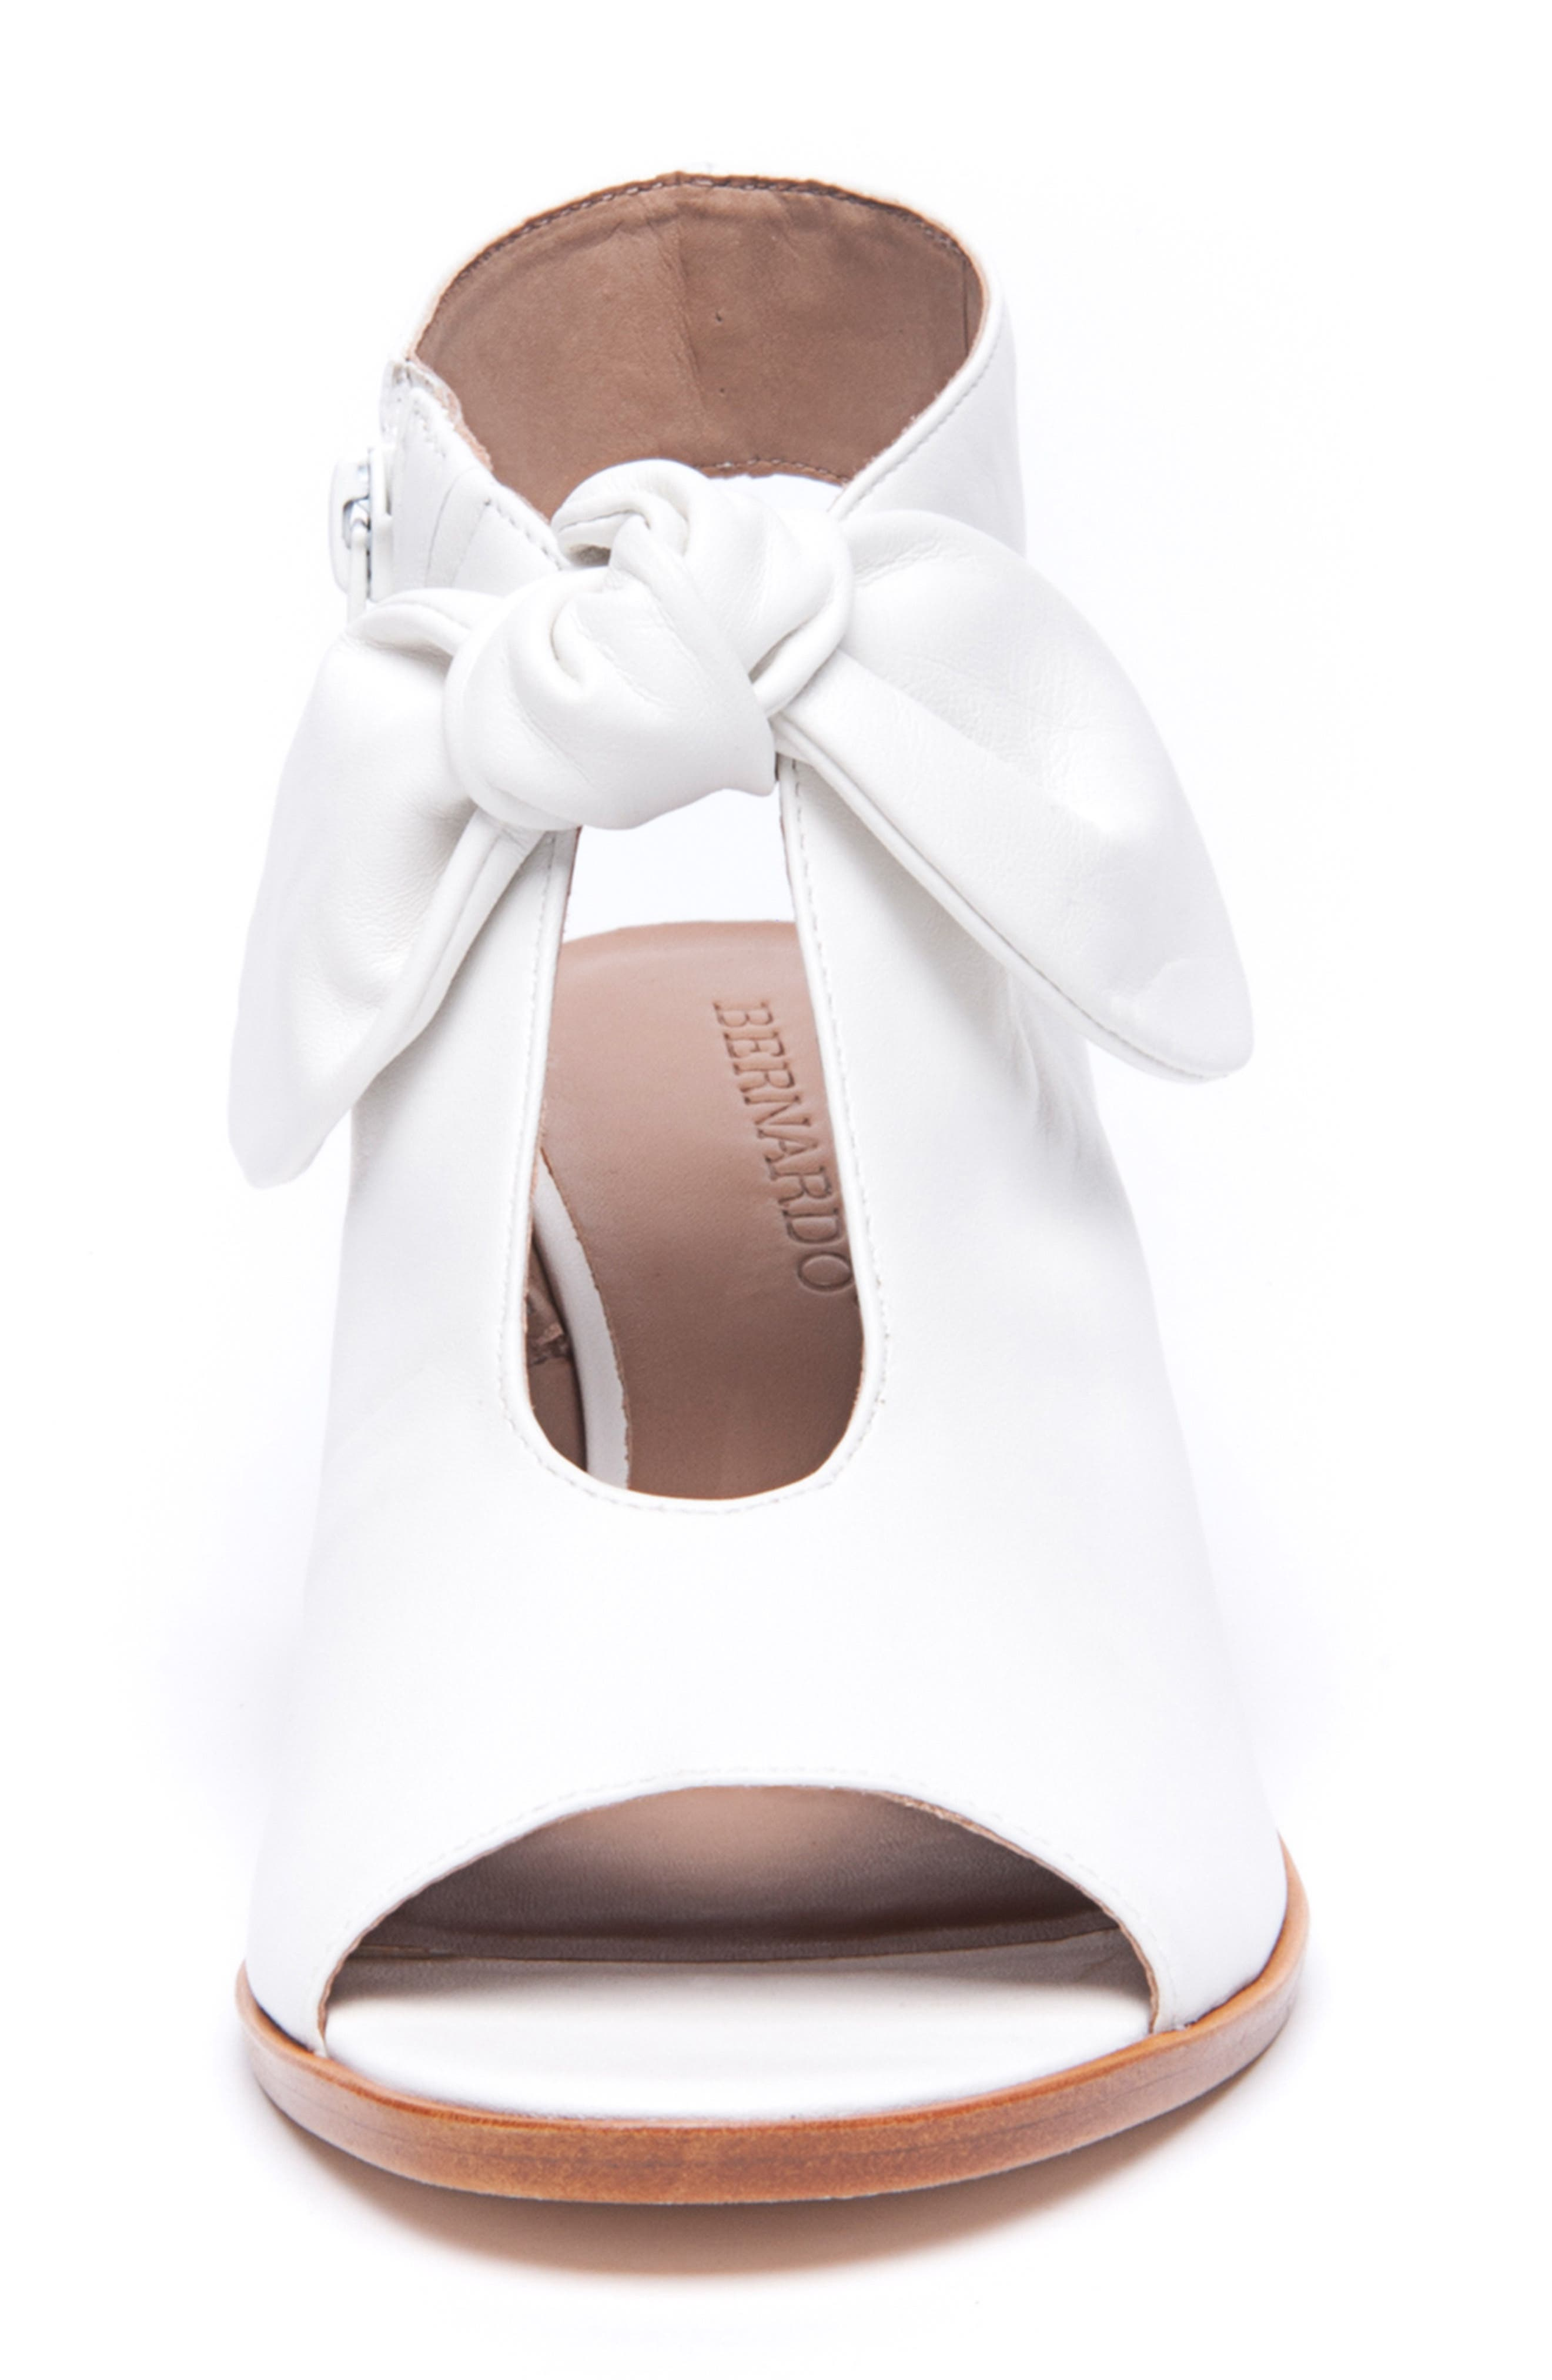 Bernardo Luna Sandal,                             Alternate thumbnail 4, color,                             WHITE LEATHER